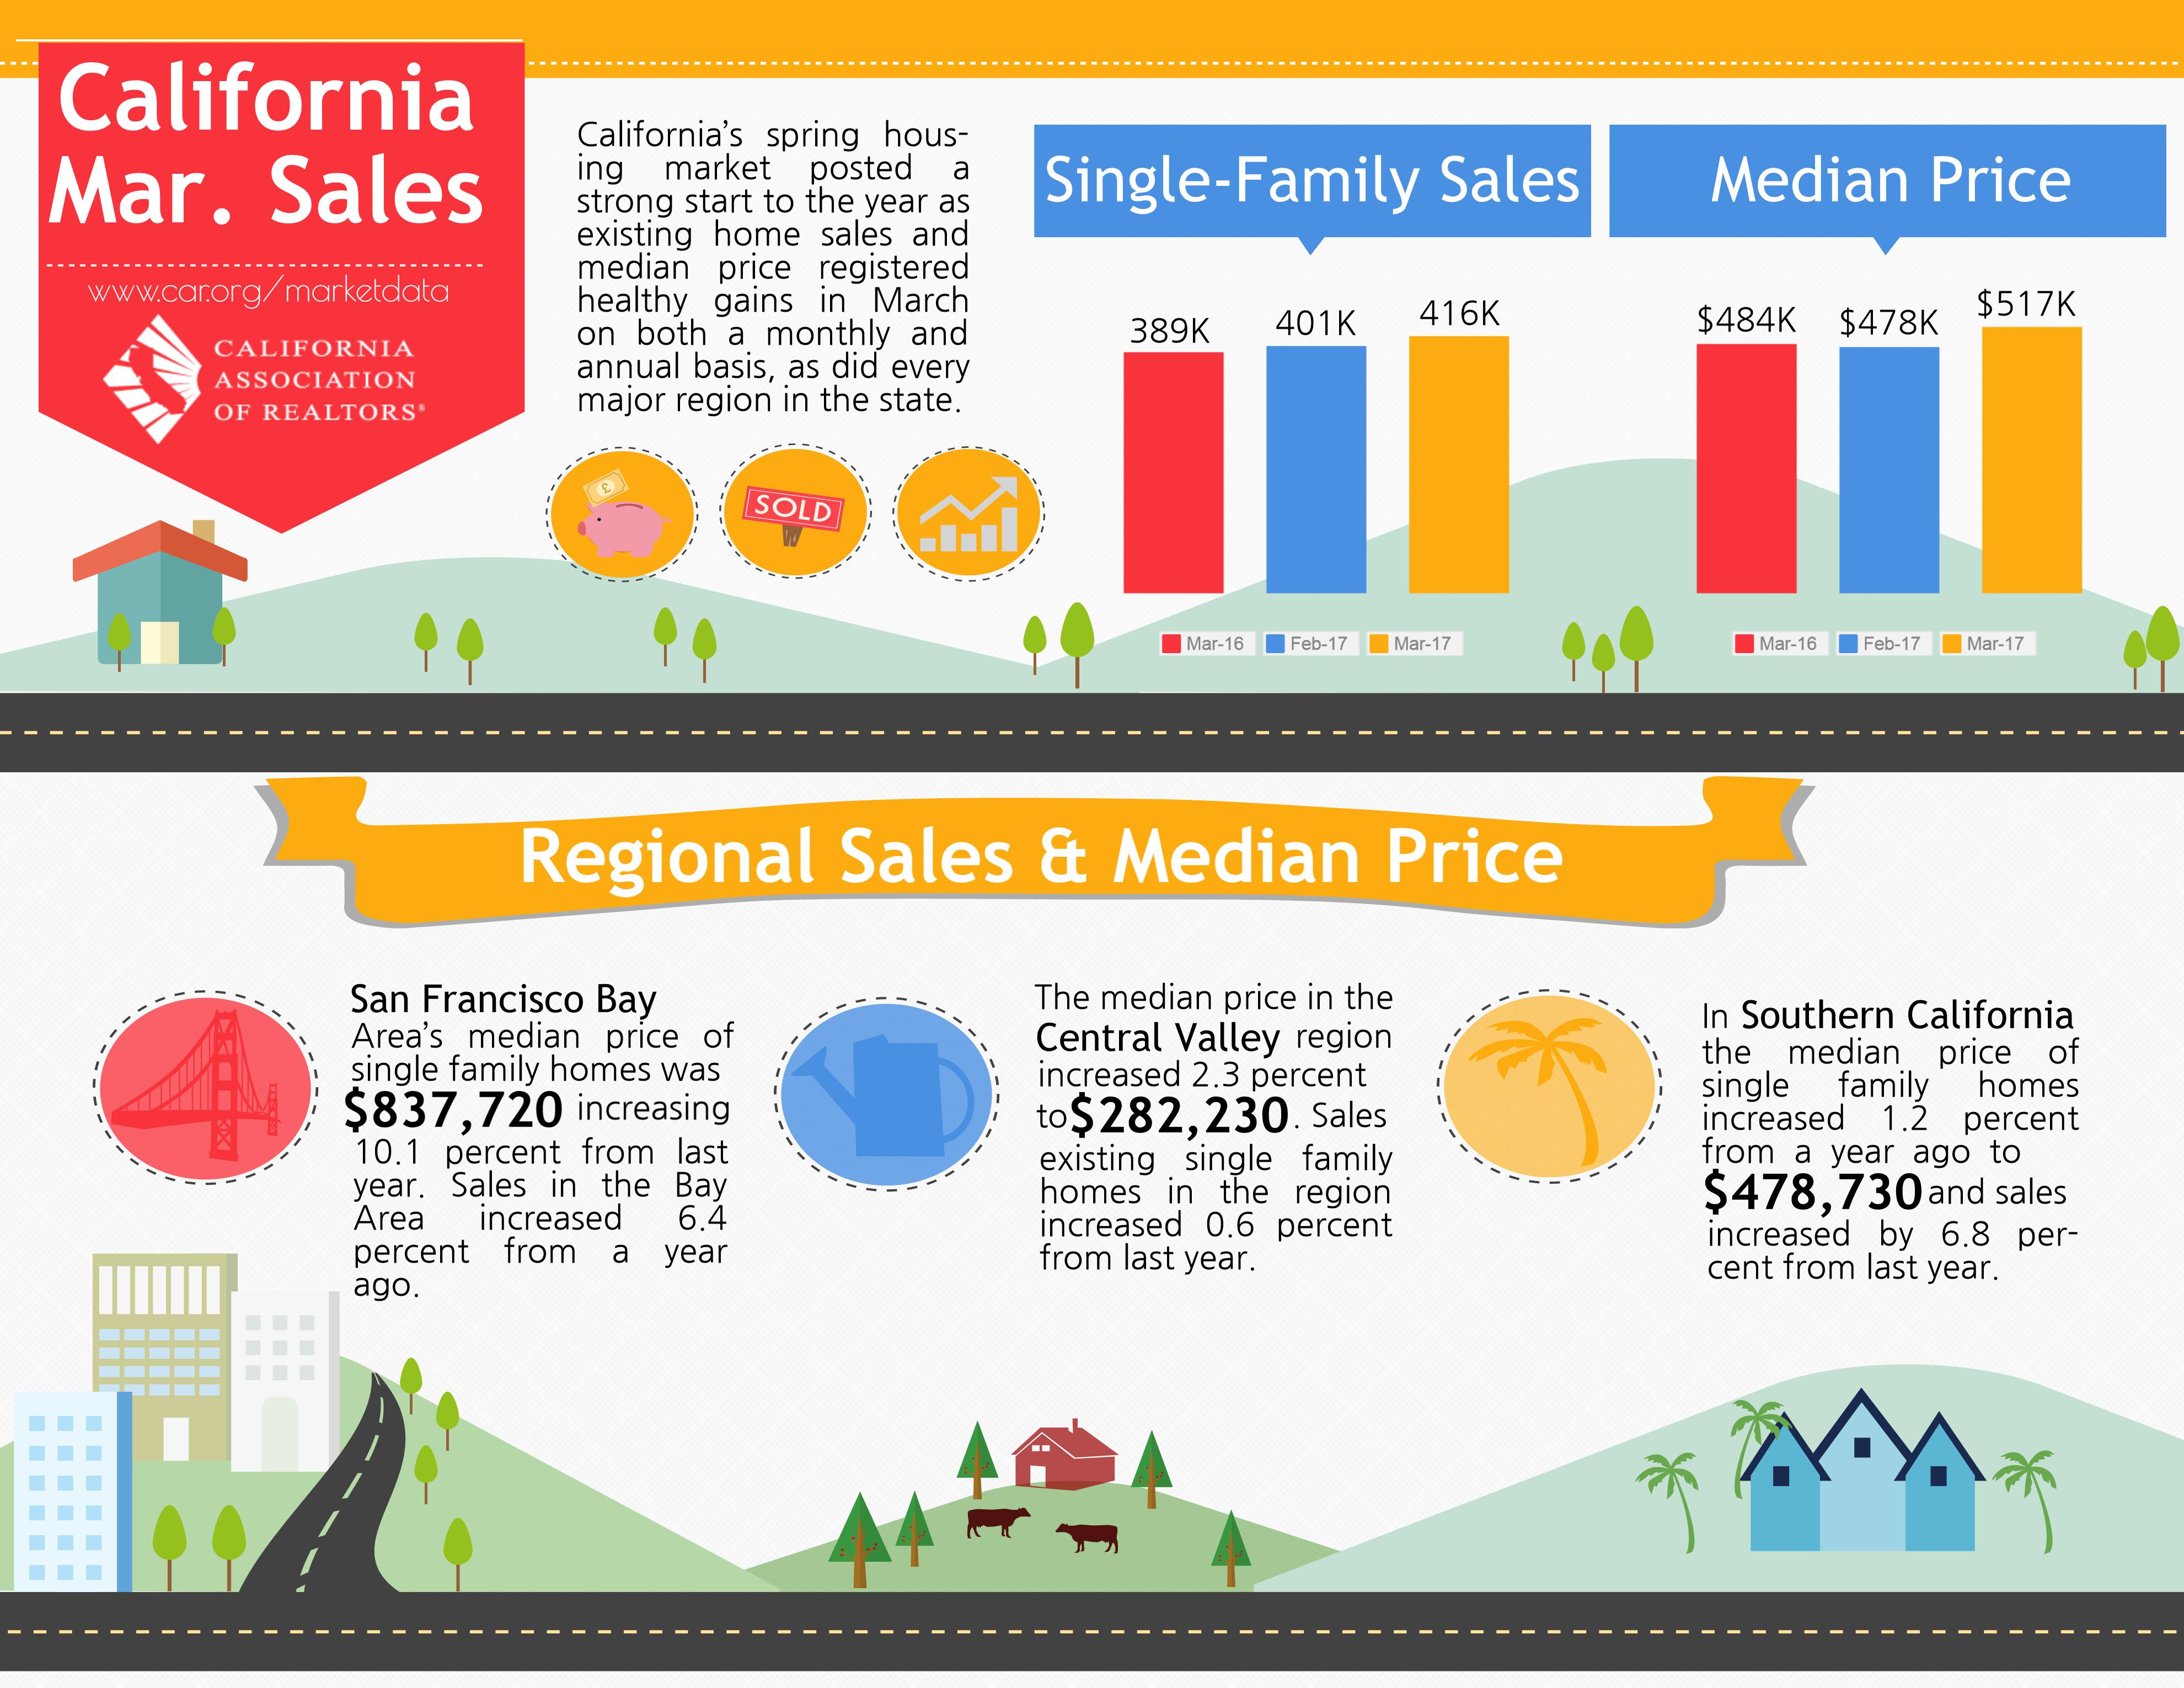 California's spring housing market posted a strong start to the year as existing home sales and median price registered healthy gains in March on both a monthly and annual basis, as did every major region in the state. In Southern California, the median price of SFR increased 1.2 percent from a year ago to $478,730 and sales increased by 6.8% from last year.